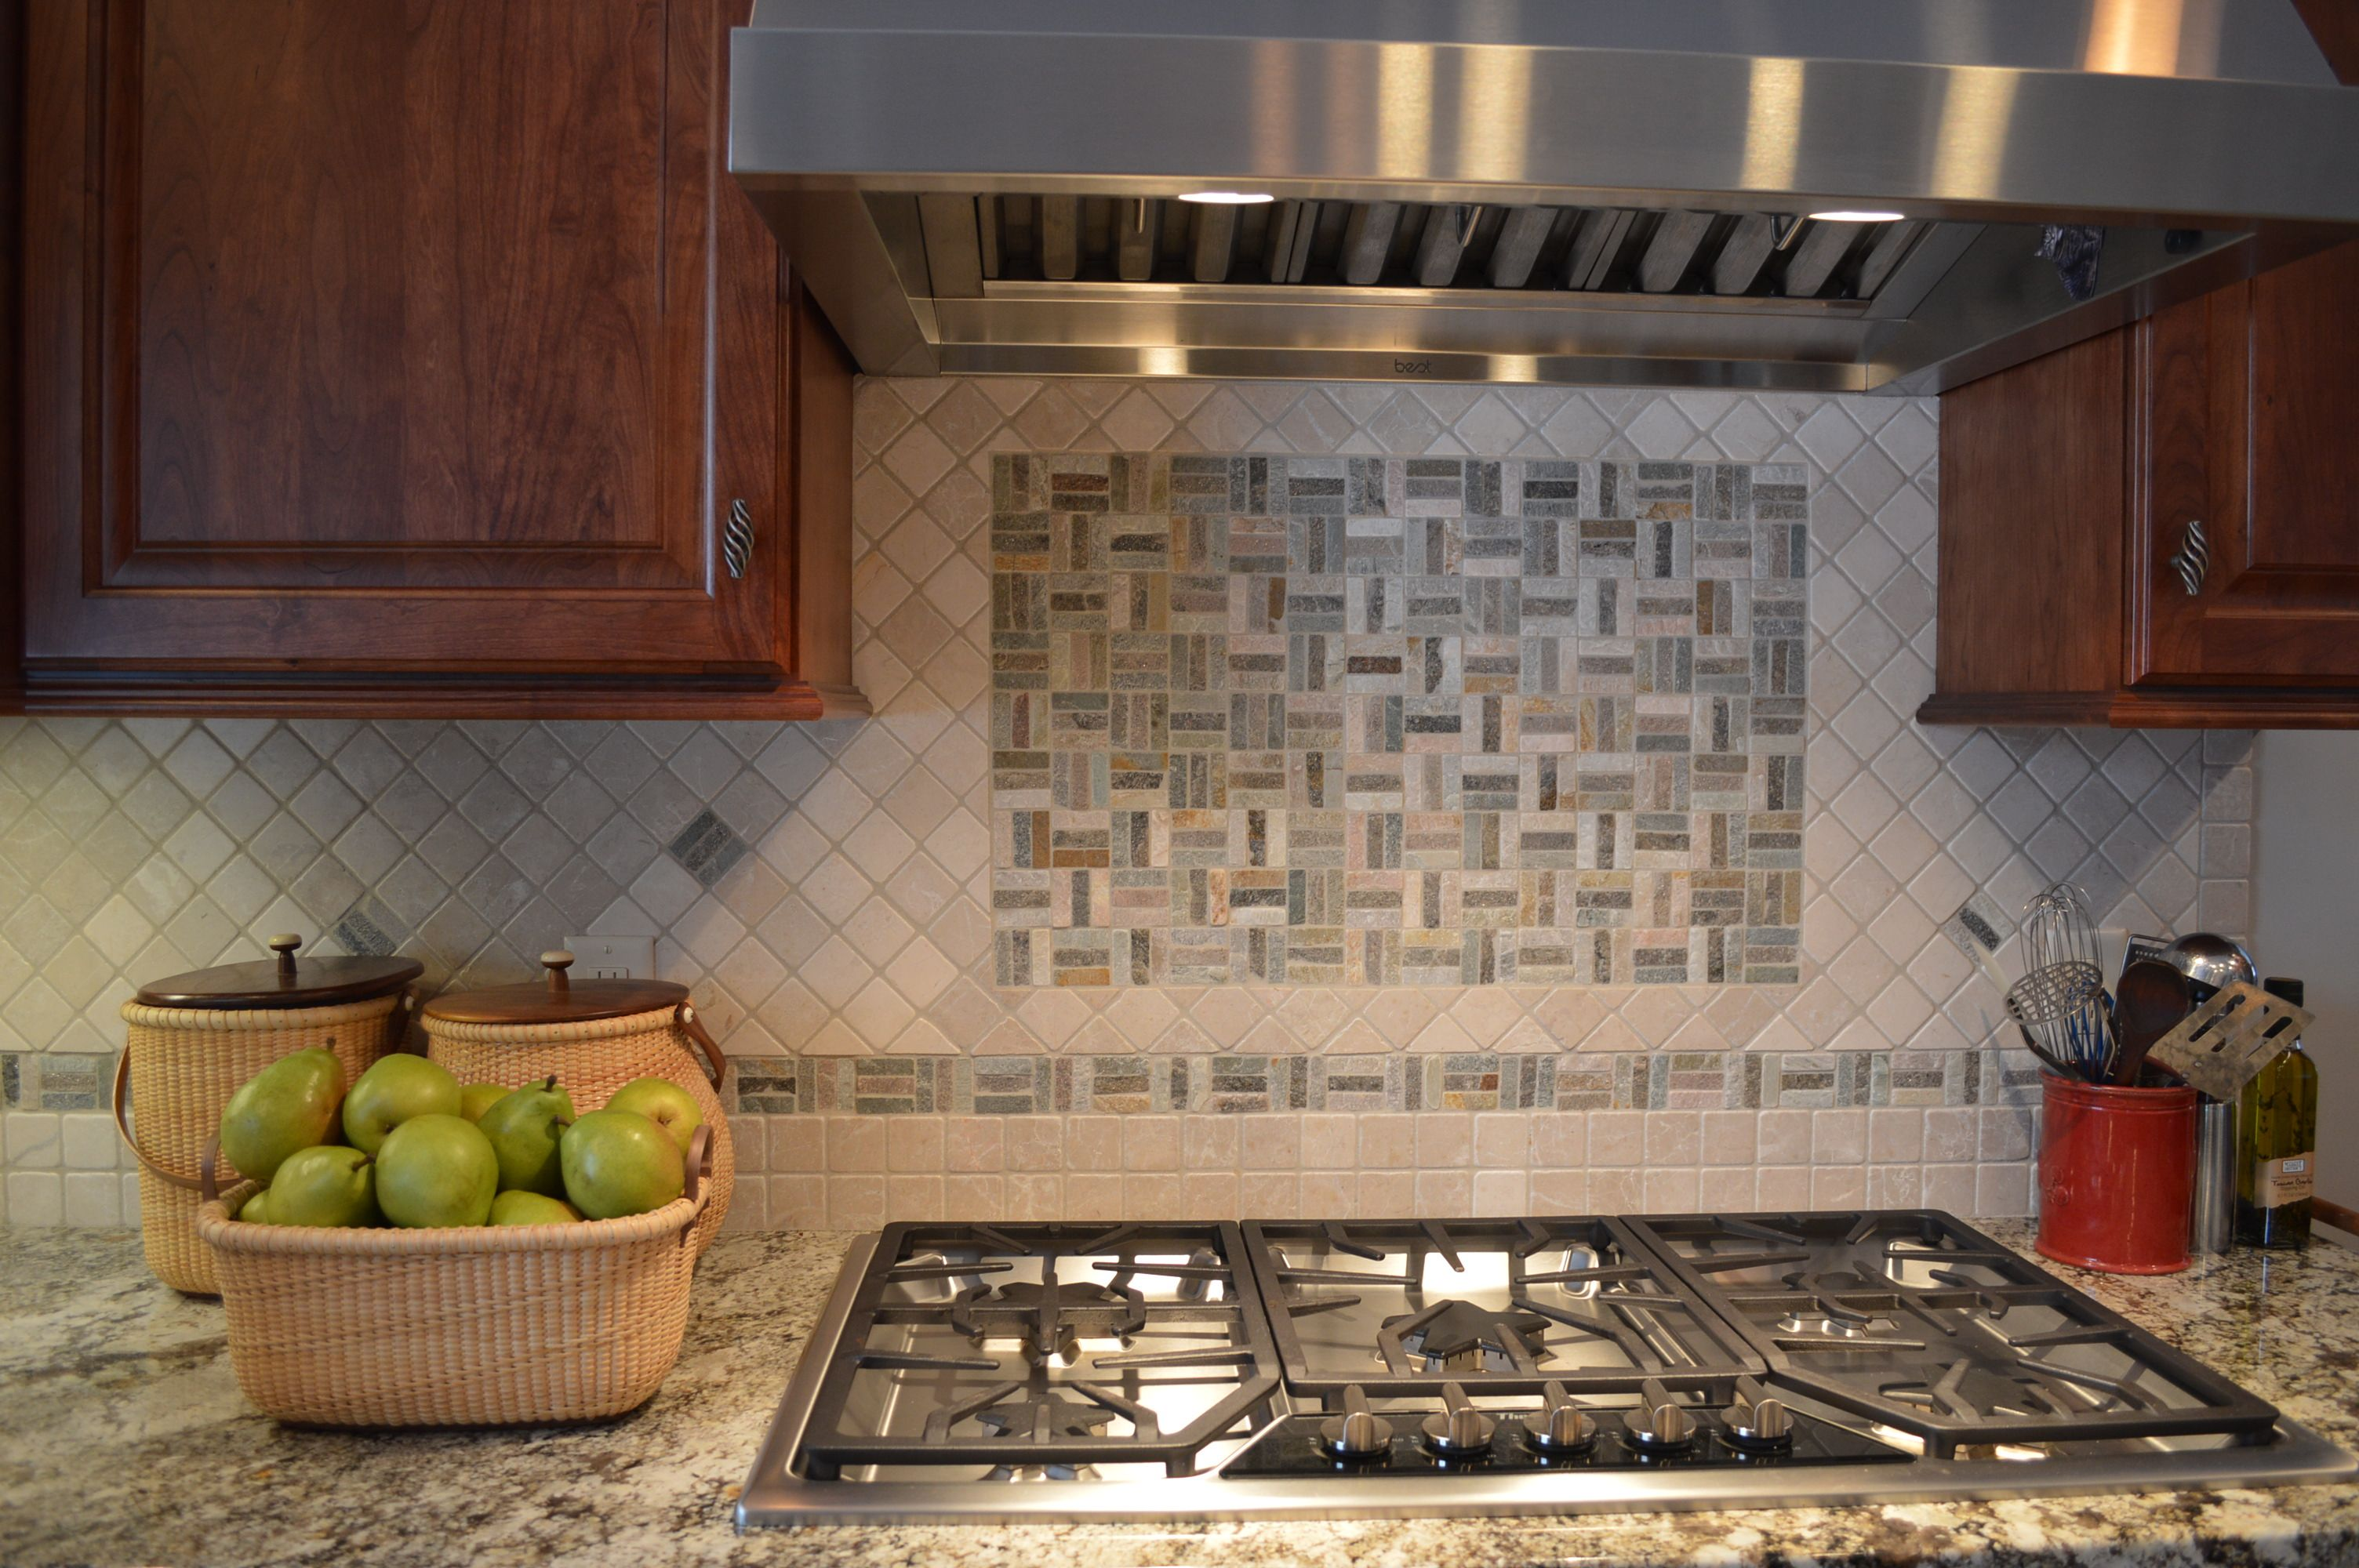 Slate subway tile in herringbone google search kitchen slate subway tile in herringbone google search dailygadgetfo Image collections